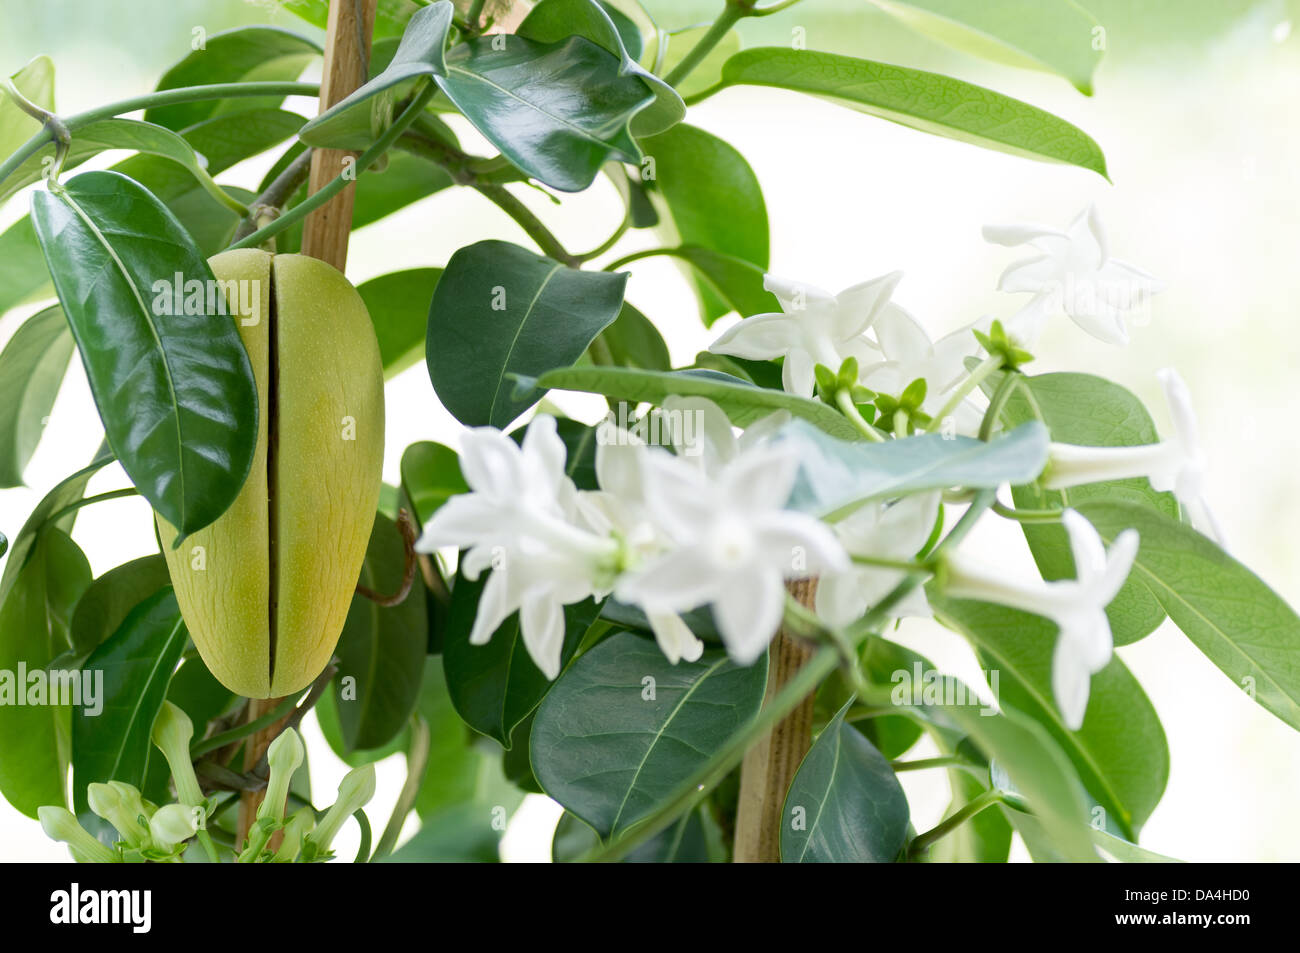 A stephanotis plant with several white flower buds and fruit. - Stock Image